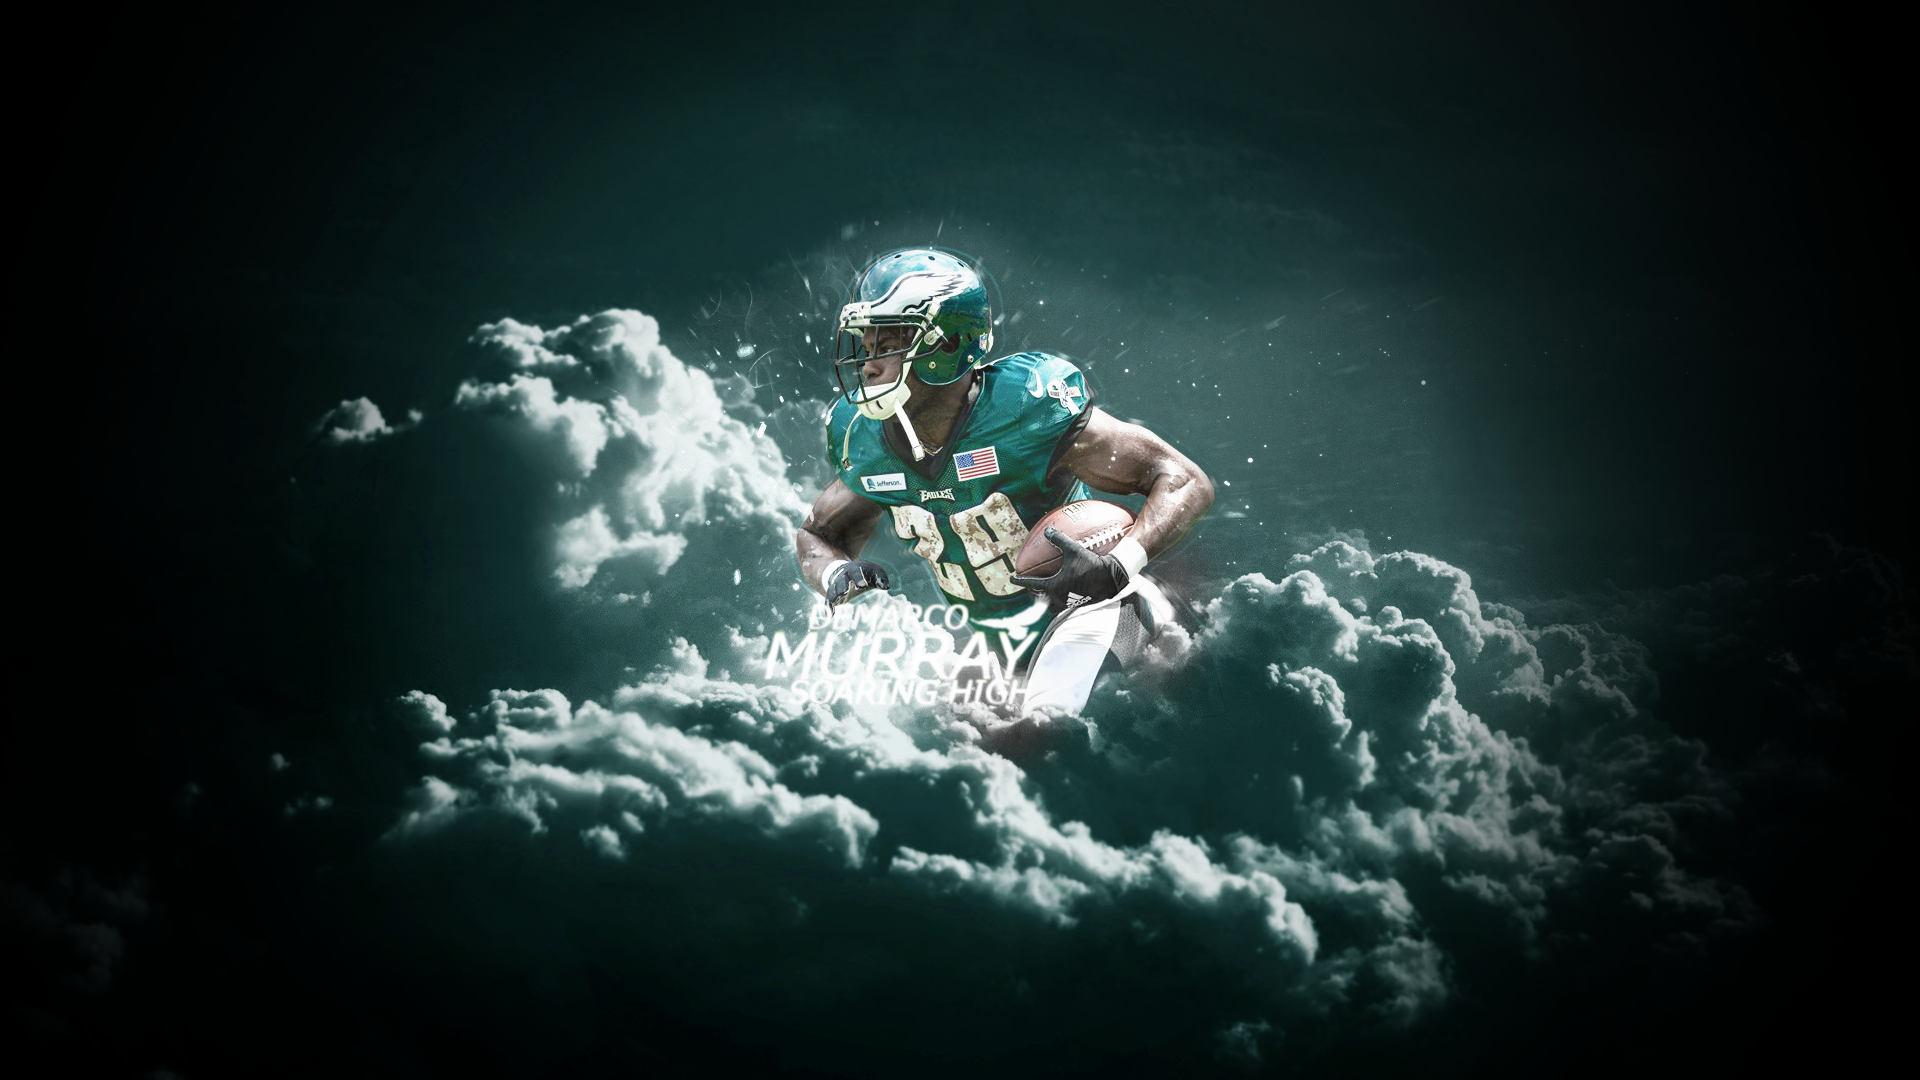 Eagles Wallpapers Android Apps on Google Play